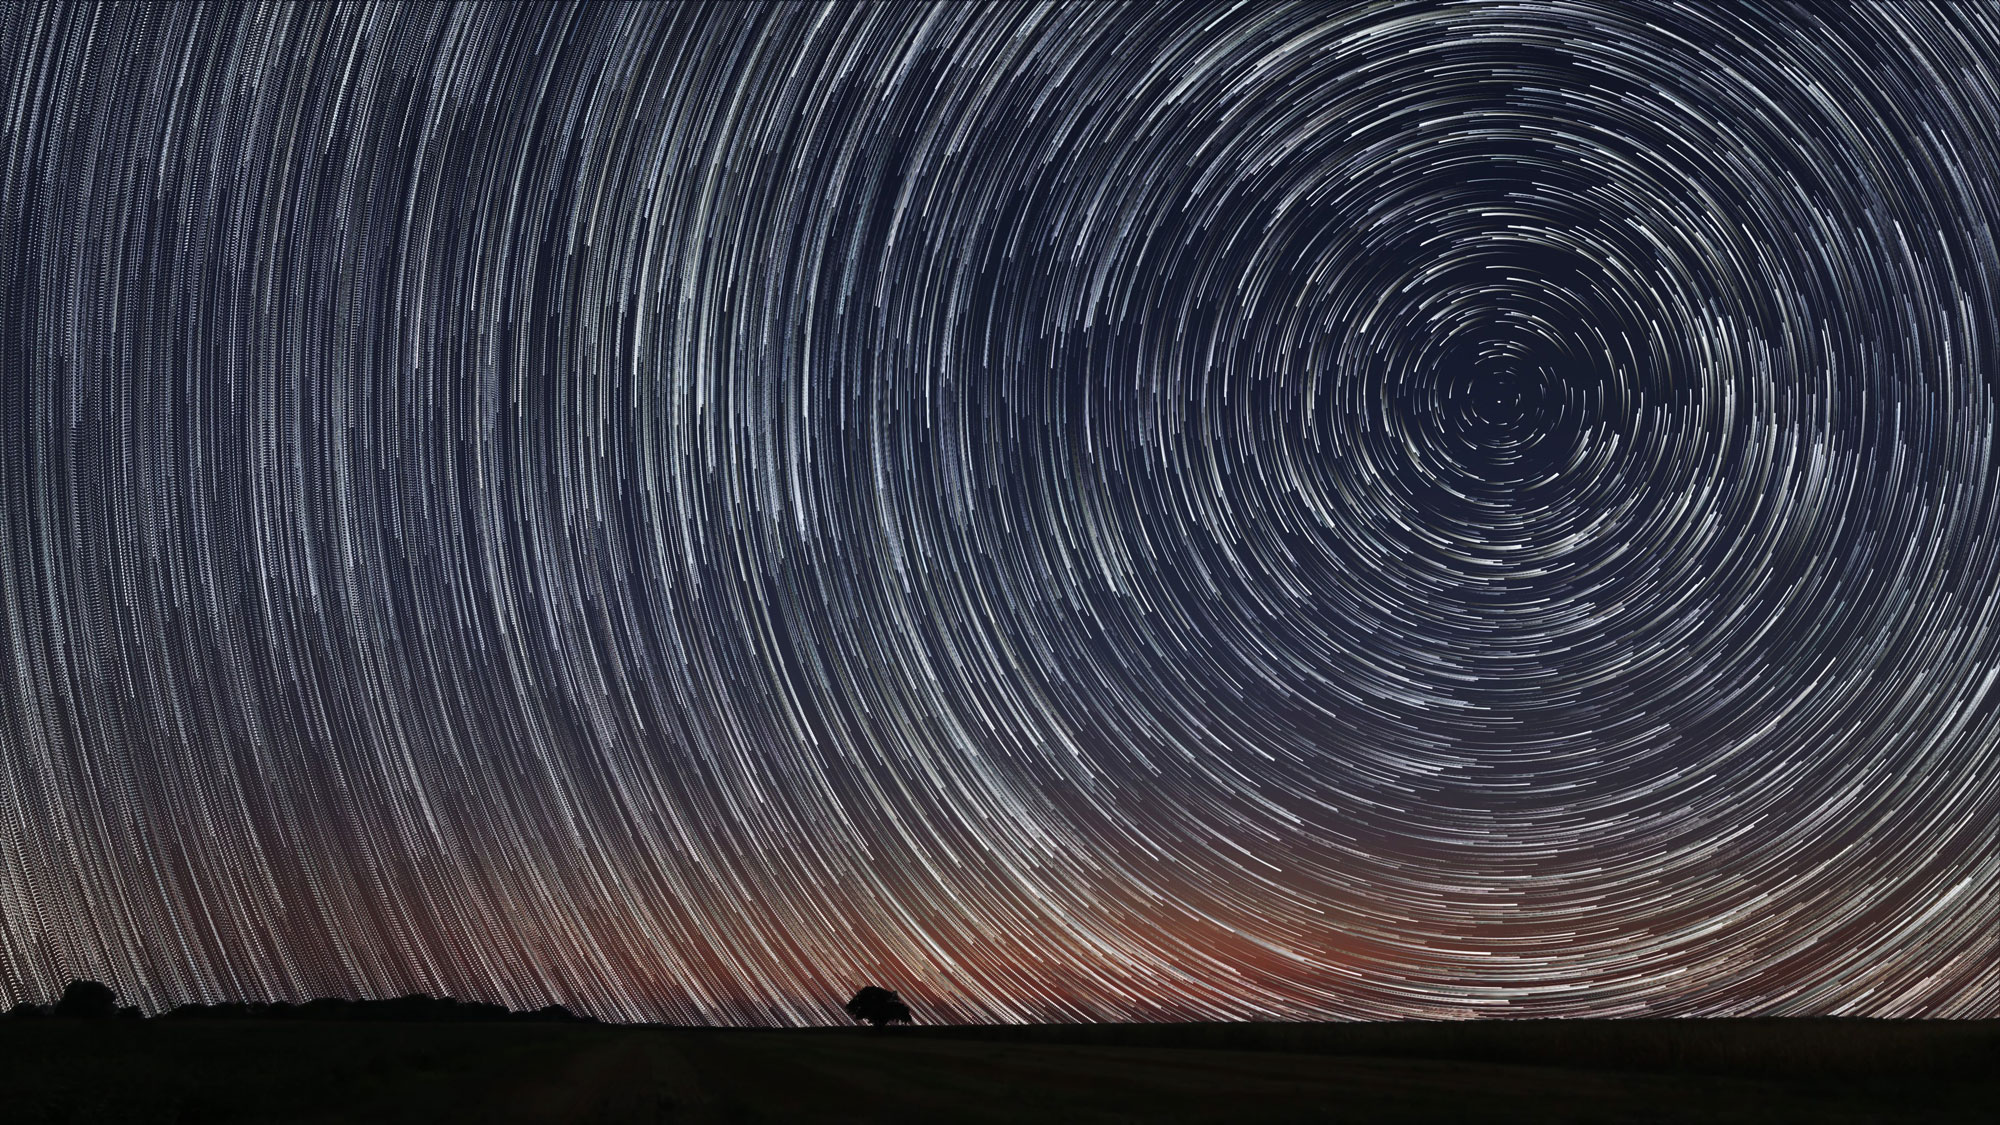 Due to Earth's rotation, the sun, moon, and stars appear in different places in the sky each day. Here, the apparent motion of the stars results in a unique glow across the night sky.